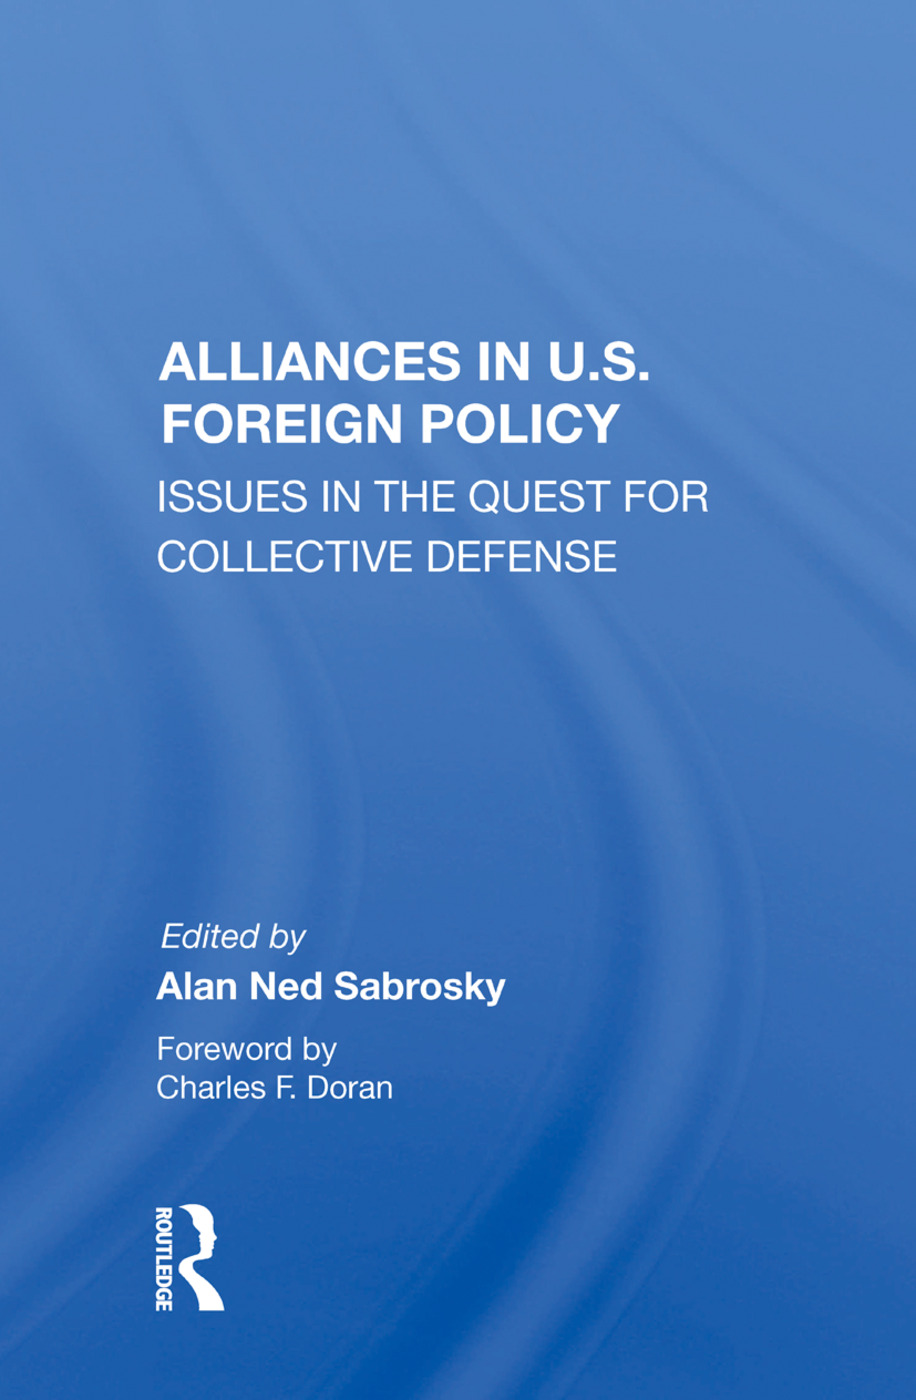 Alliances in U.S. Foreign Policy